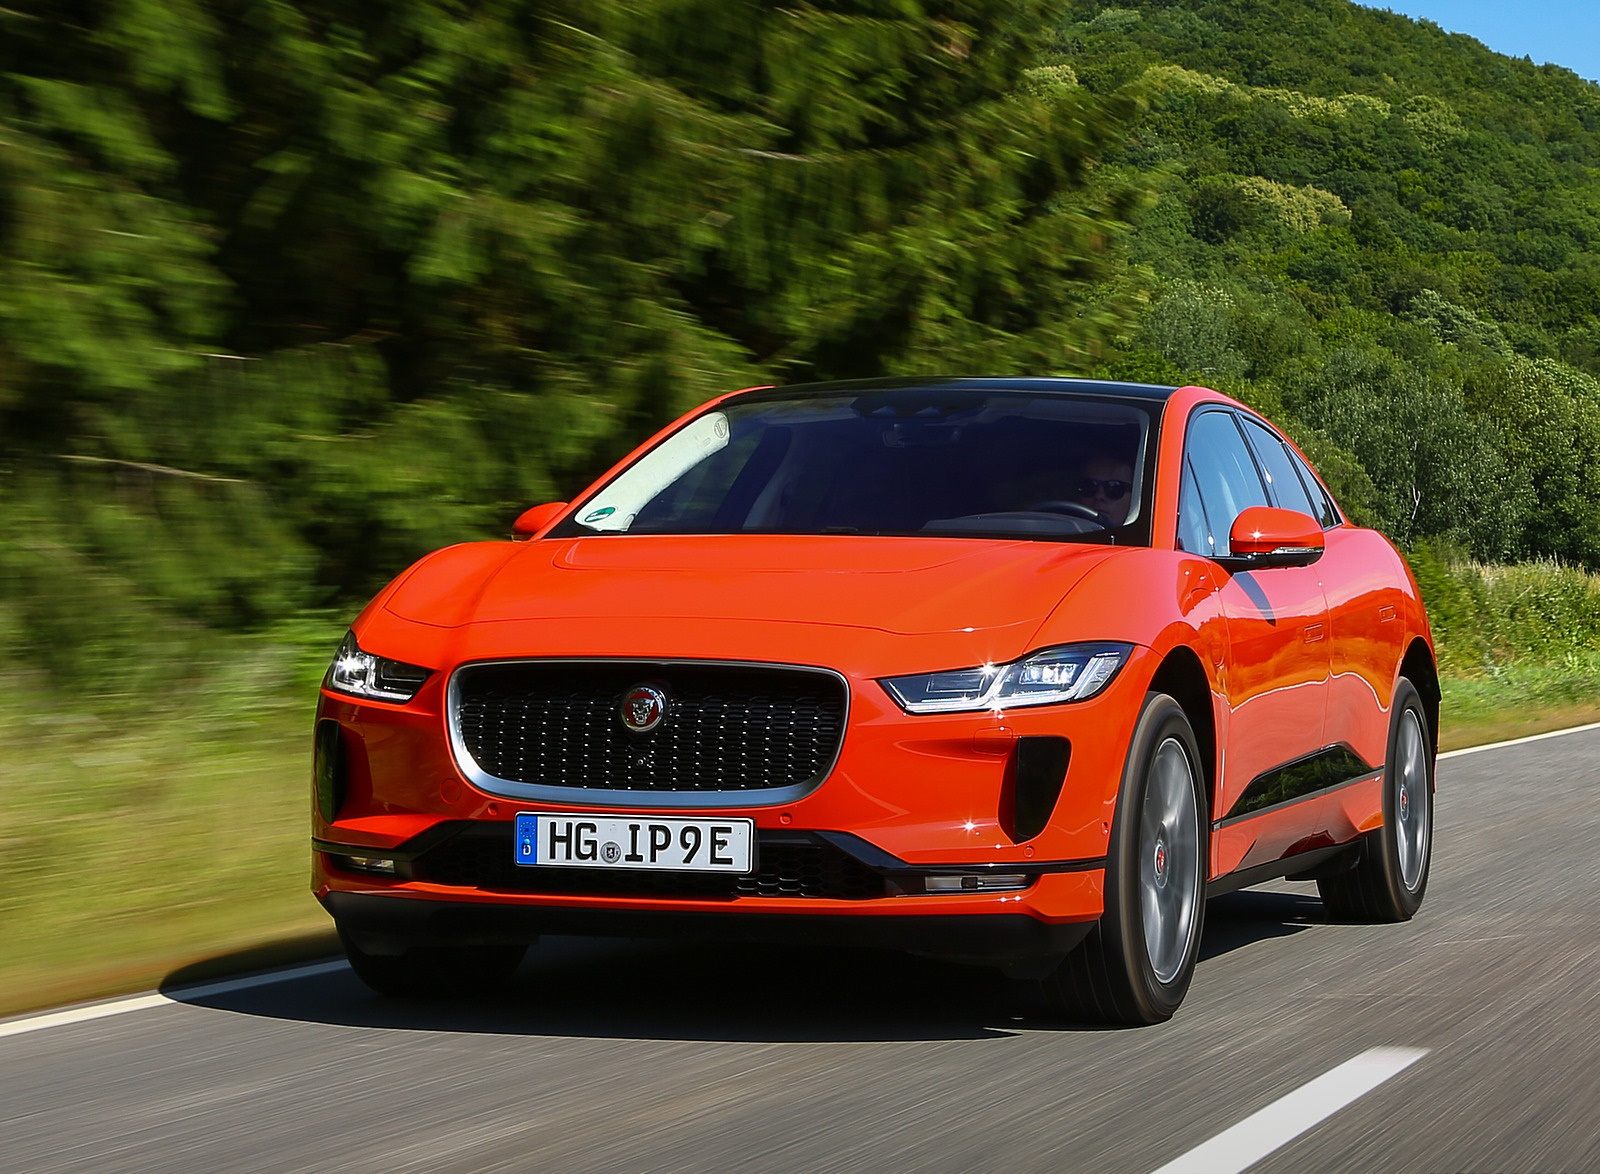 2019 Jaguar I-PACE EV400 AWD HSE First Edition (Color: Photon Red) Front Three-Quarter Wallpapers (12)